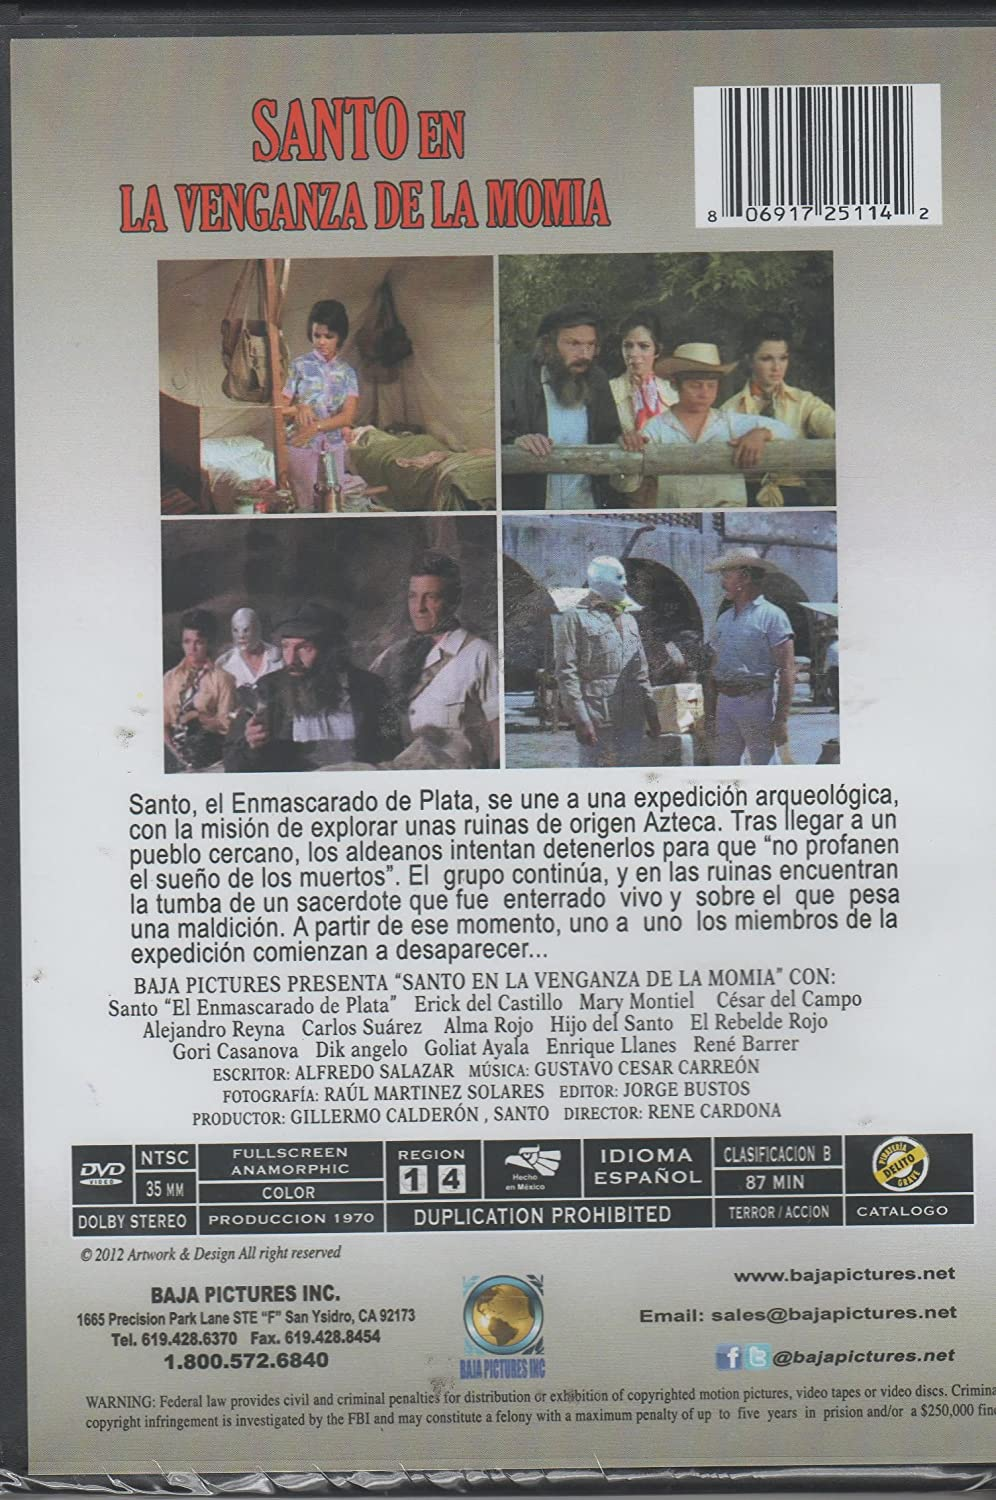 Amazon.com: Santo En La Venganza De La Momia [Ntsc/region 1 and 4 Dvd. Import - Latin America]: ERIC DEL CASTILLO & MARY MONTIEL: Movies & TV